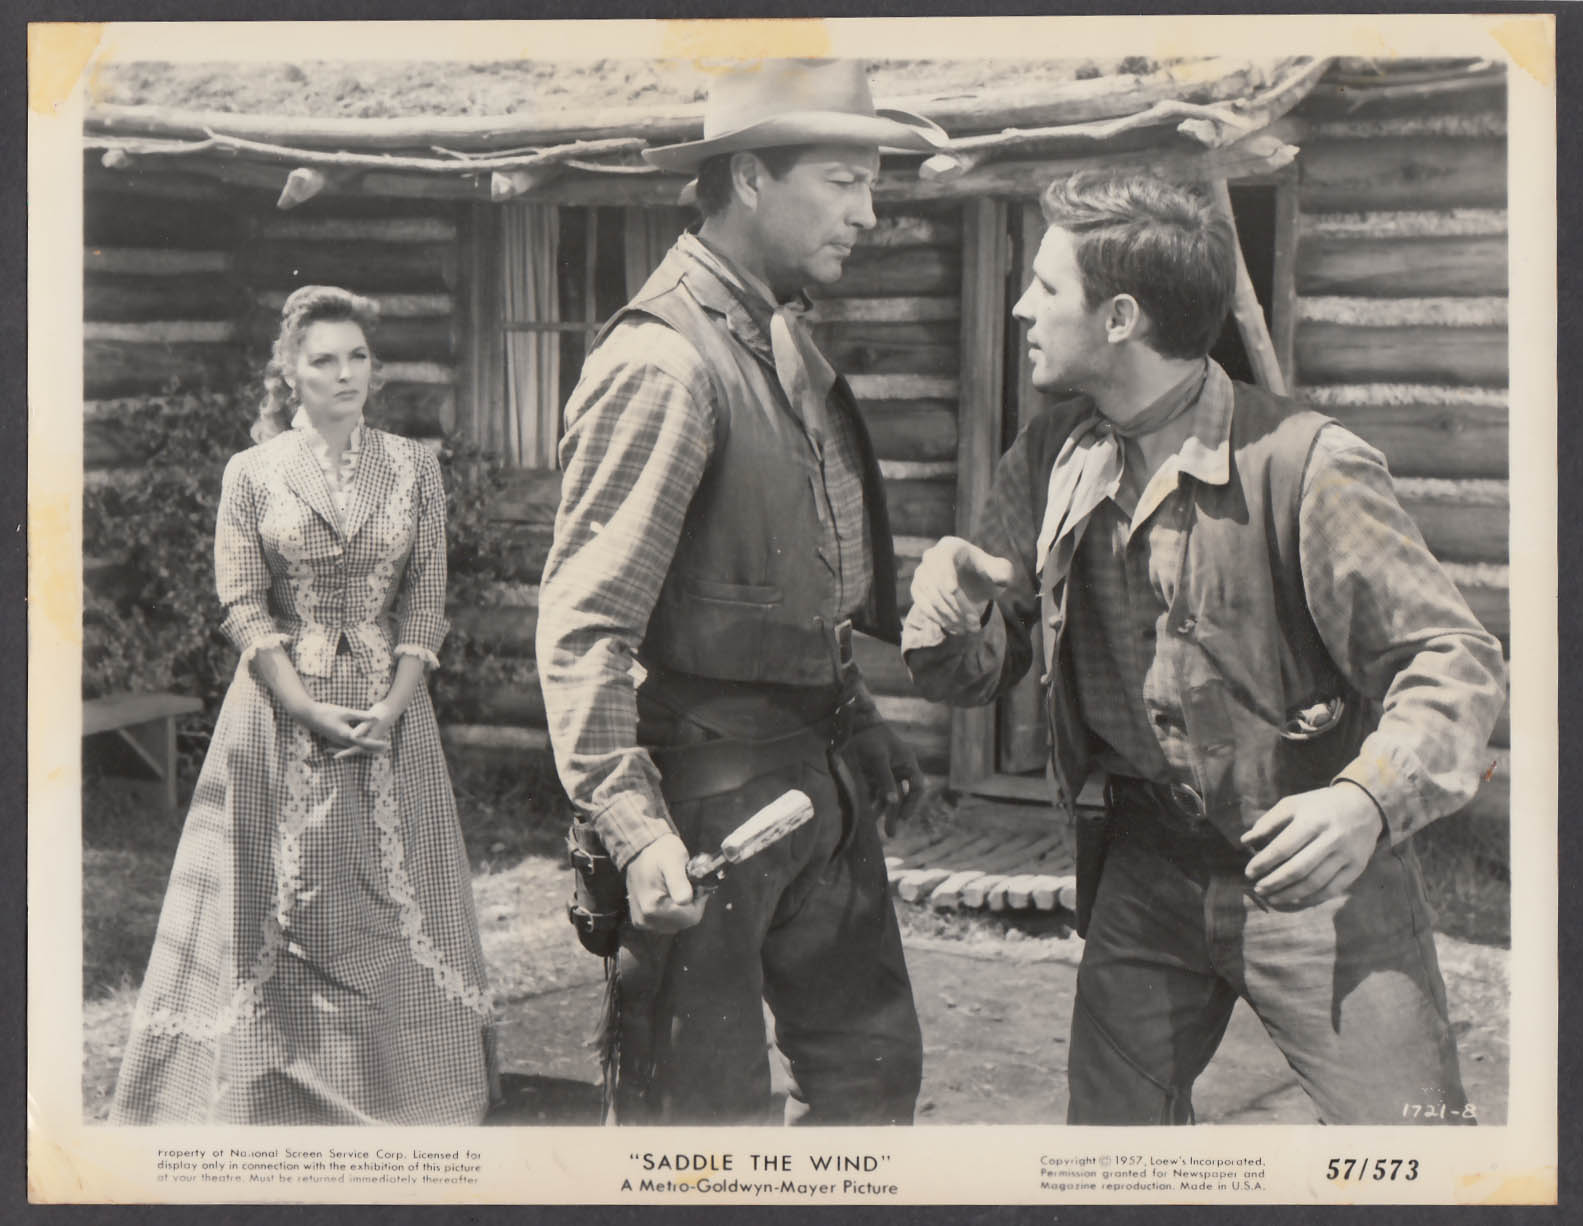 Image for Julie London Robert Taylor John Cassavetes in Saddle the Wind 8x10 photo 1957